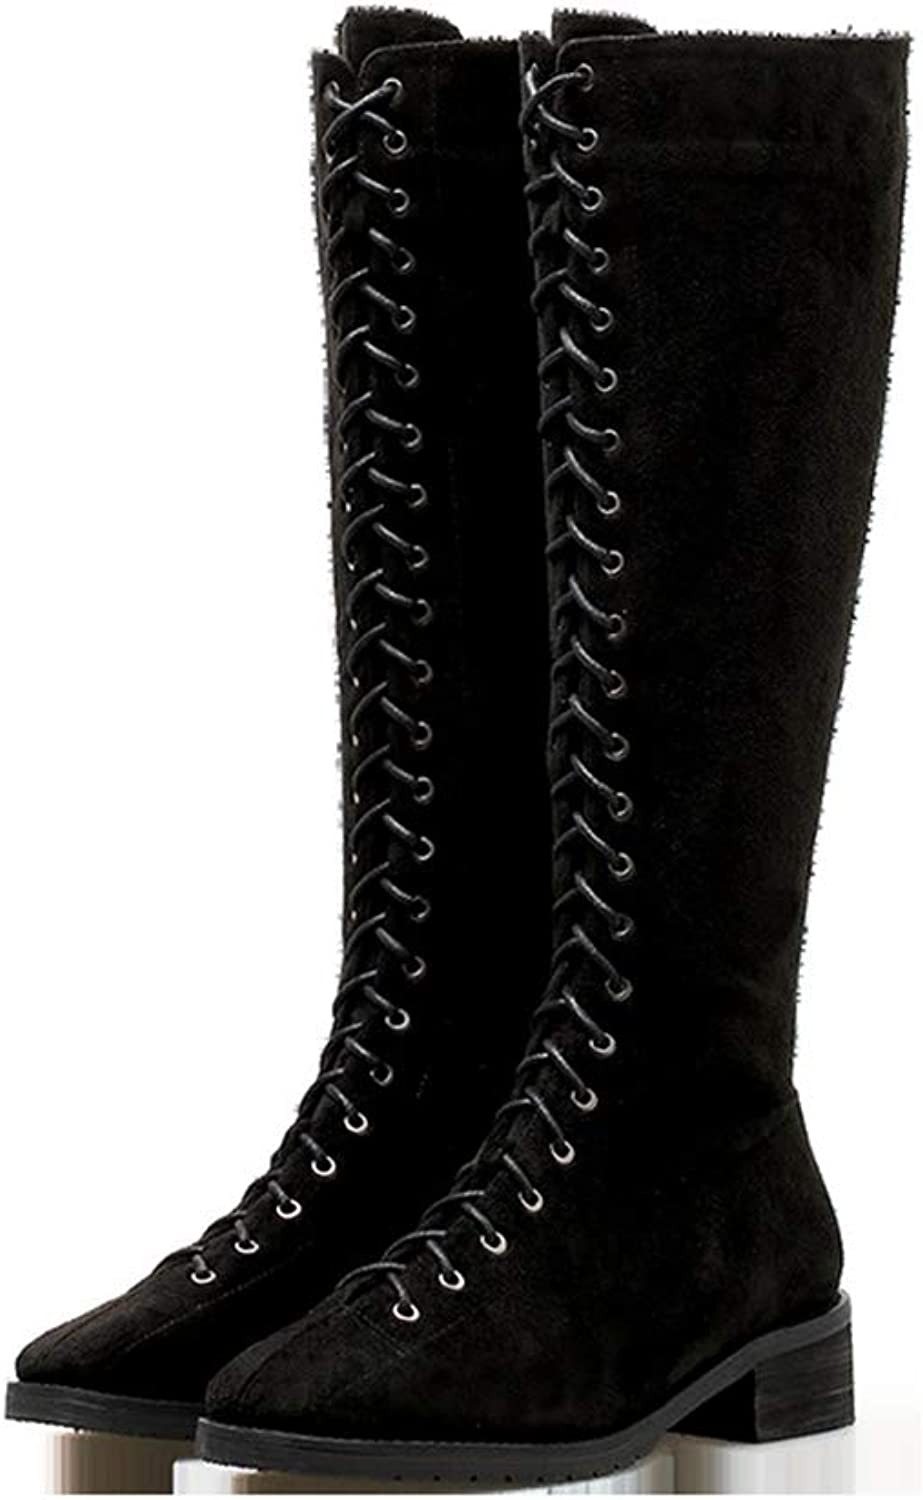 Sam Carle Women Boots, Zipper Lace Decoration Plus Velvet Round Toe Over The Knee Boots